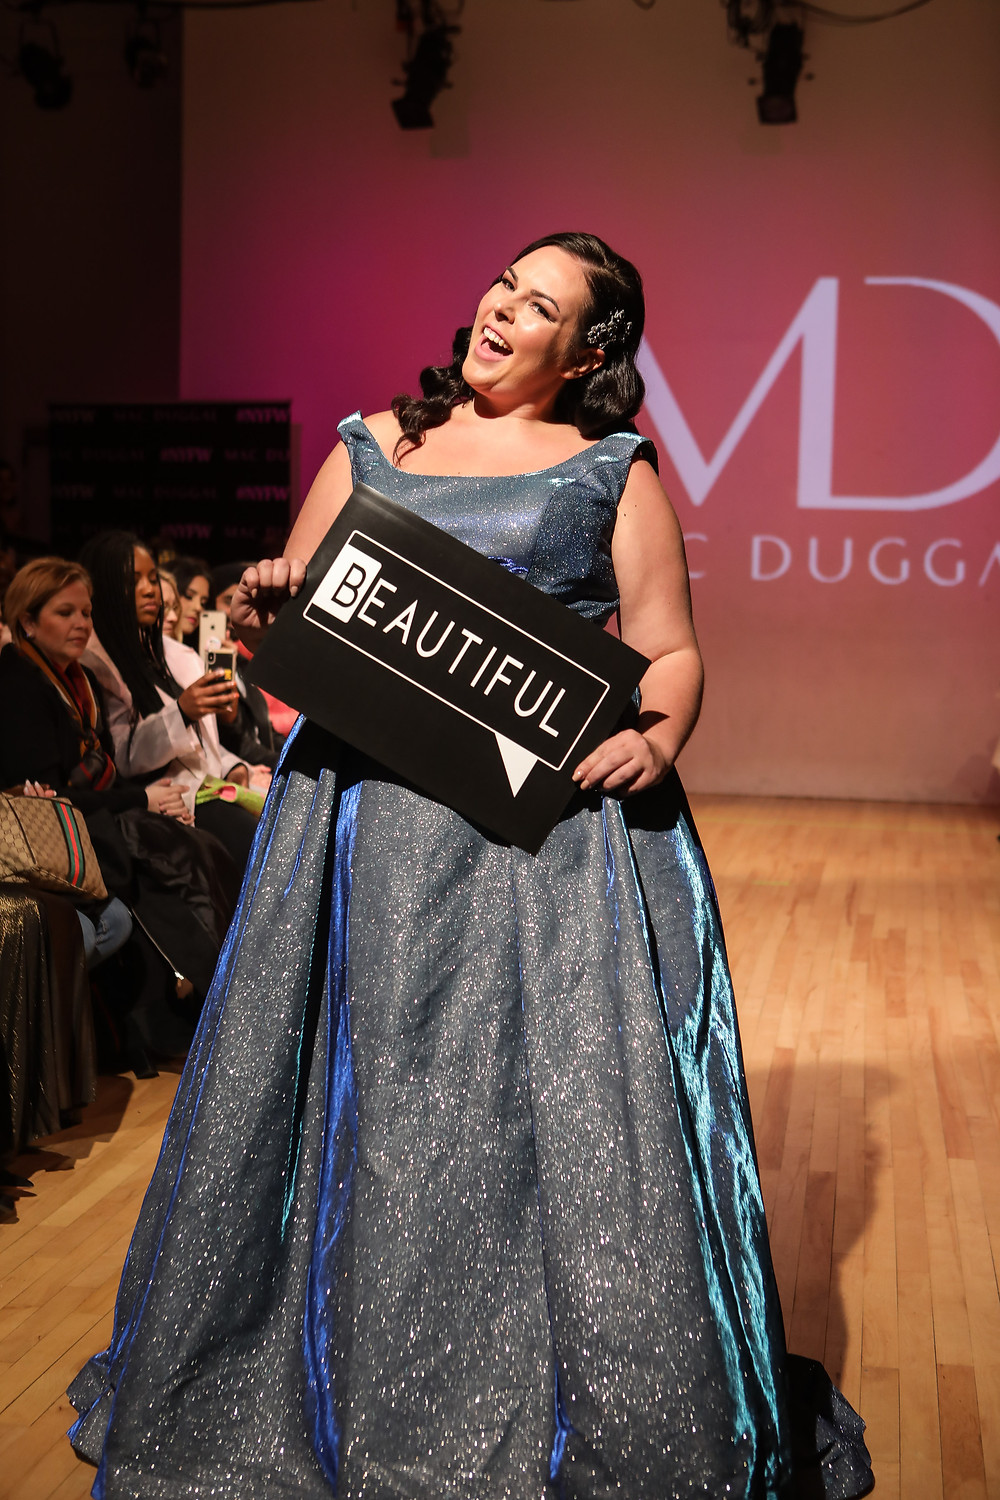 Kari walking the runway in a beautiful silver glitter gown holding a sign that says beautiful